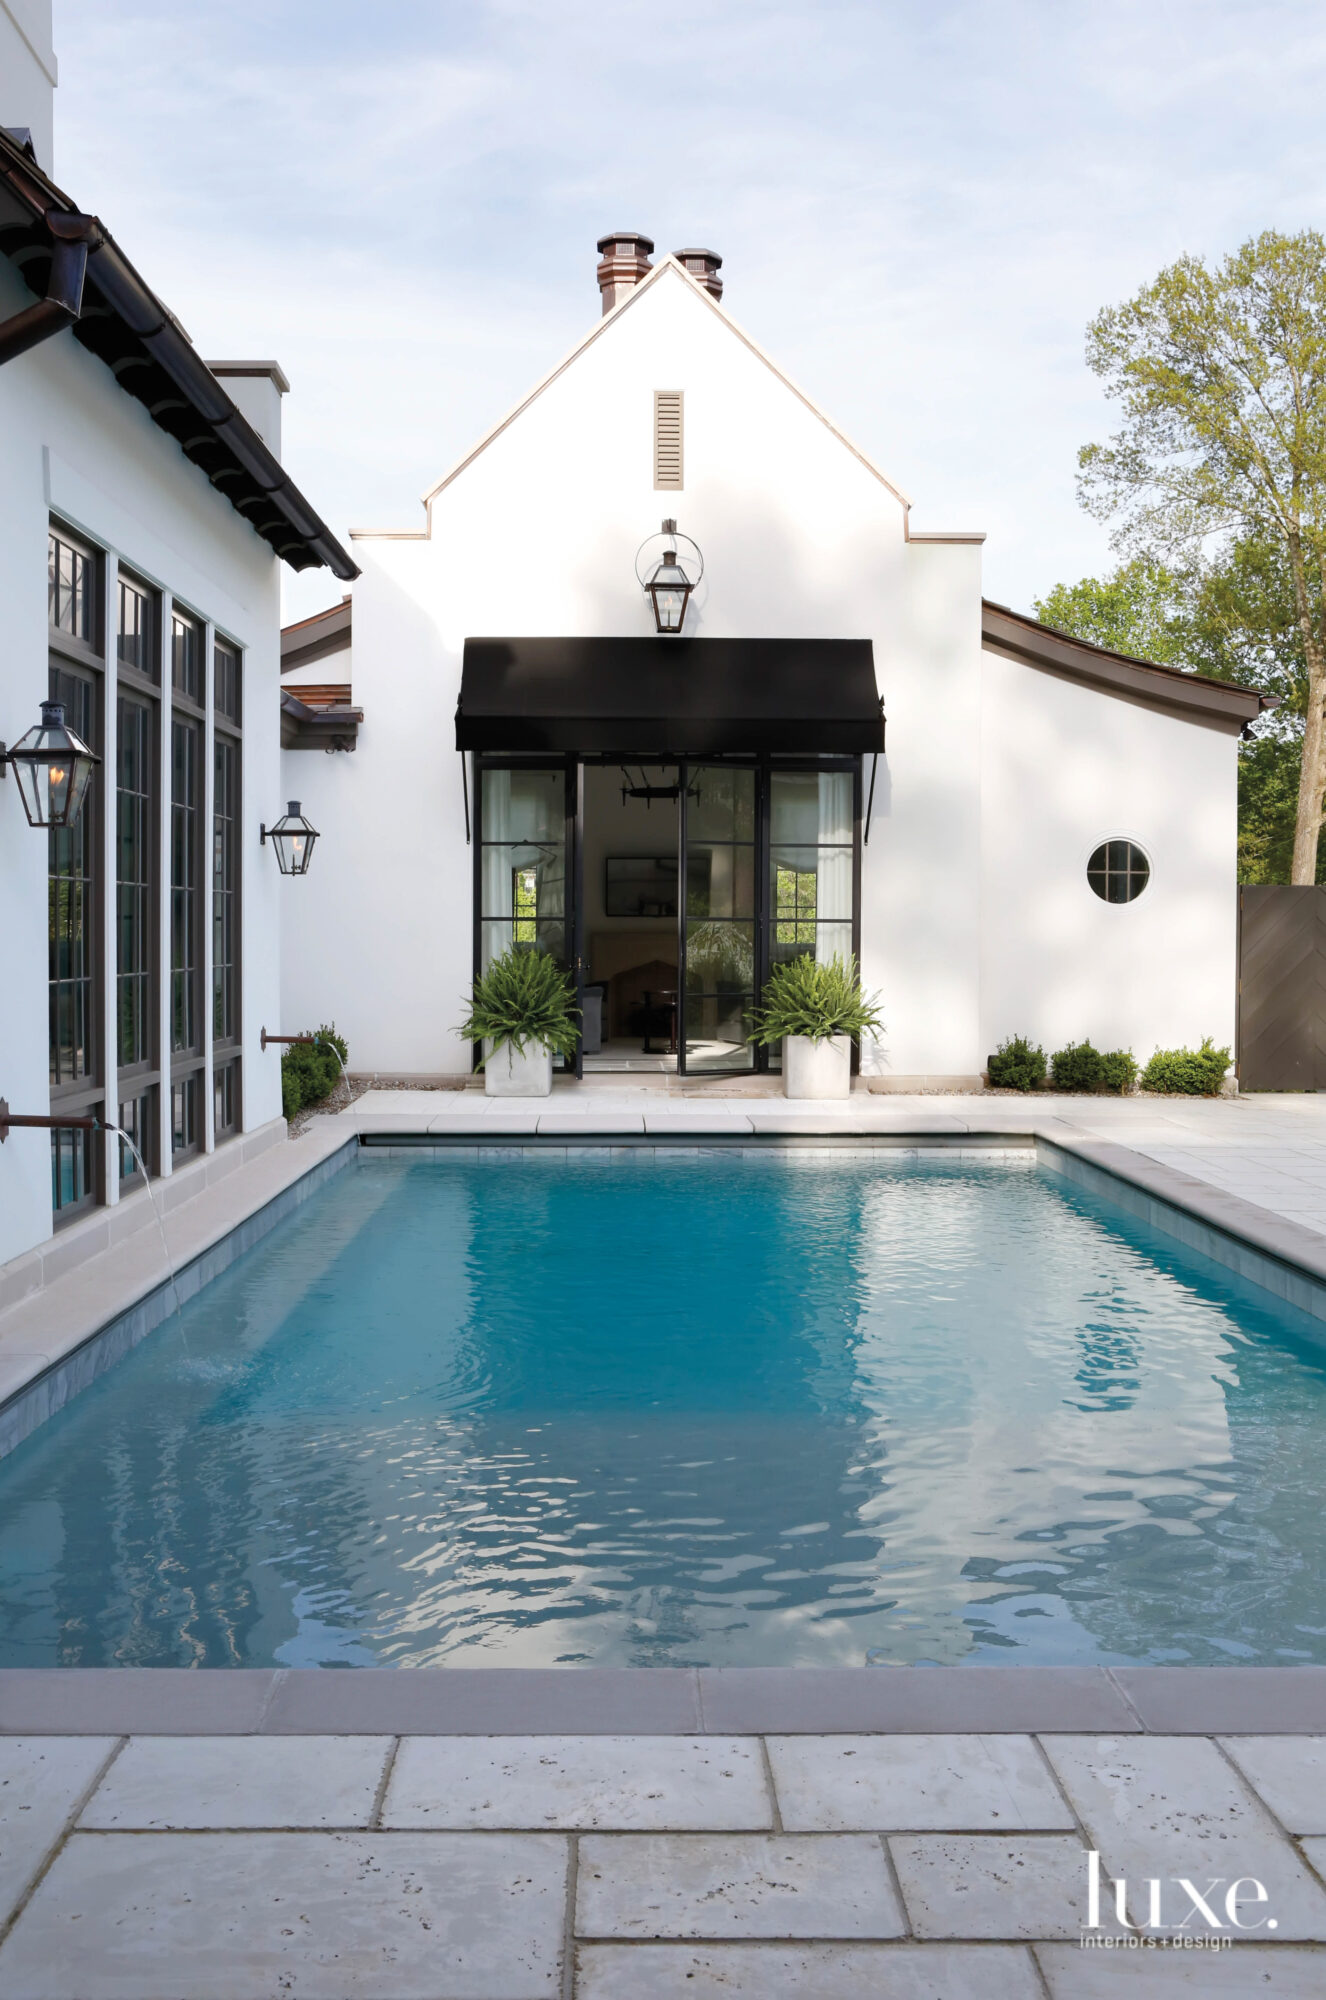 Casement windows, positioned directly against an outdoor pool and terrace, open doors to a home office in the background